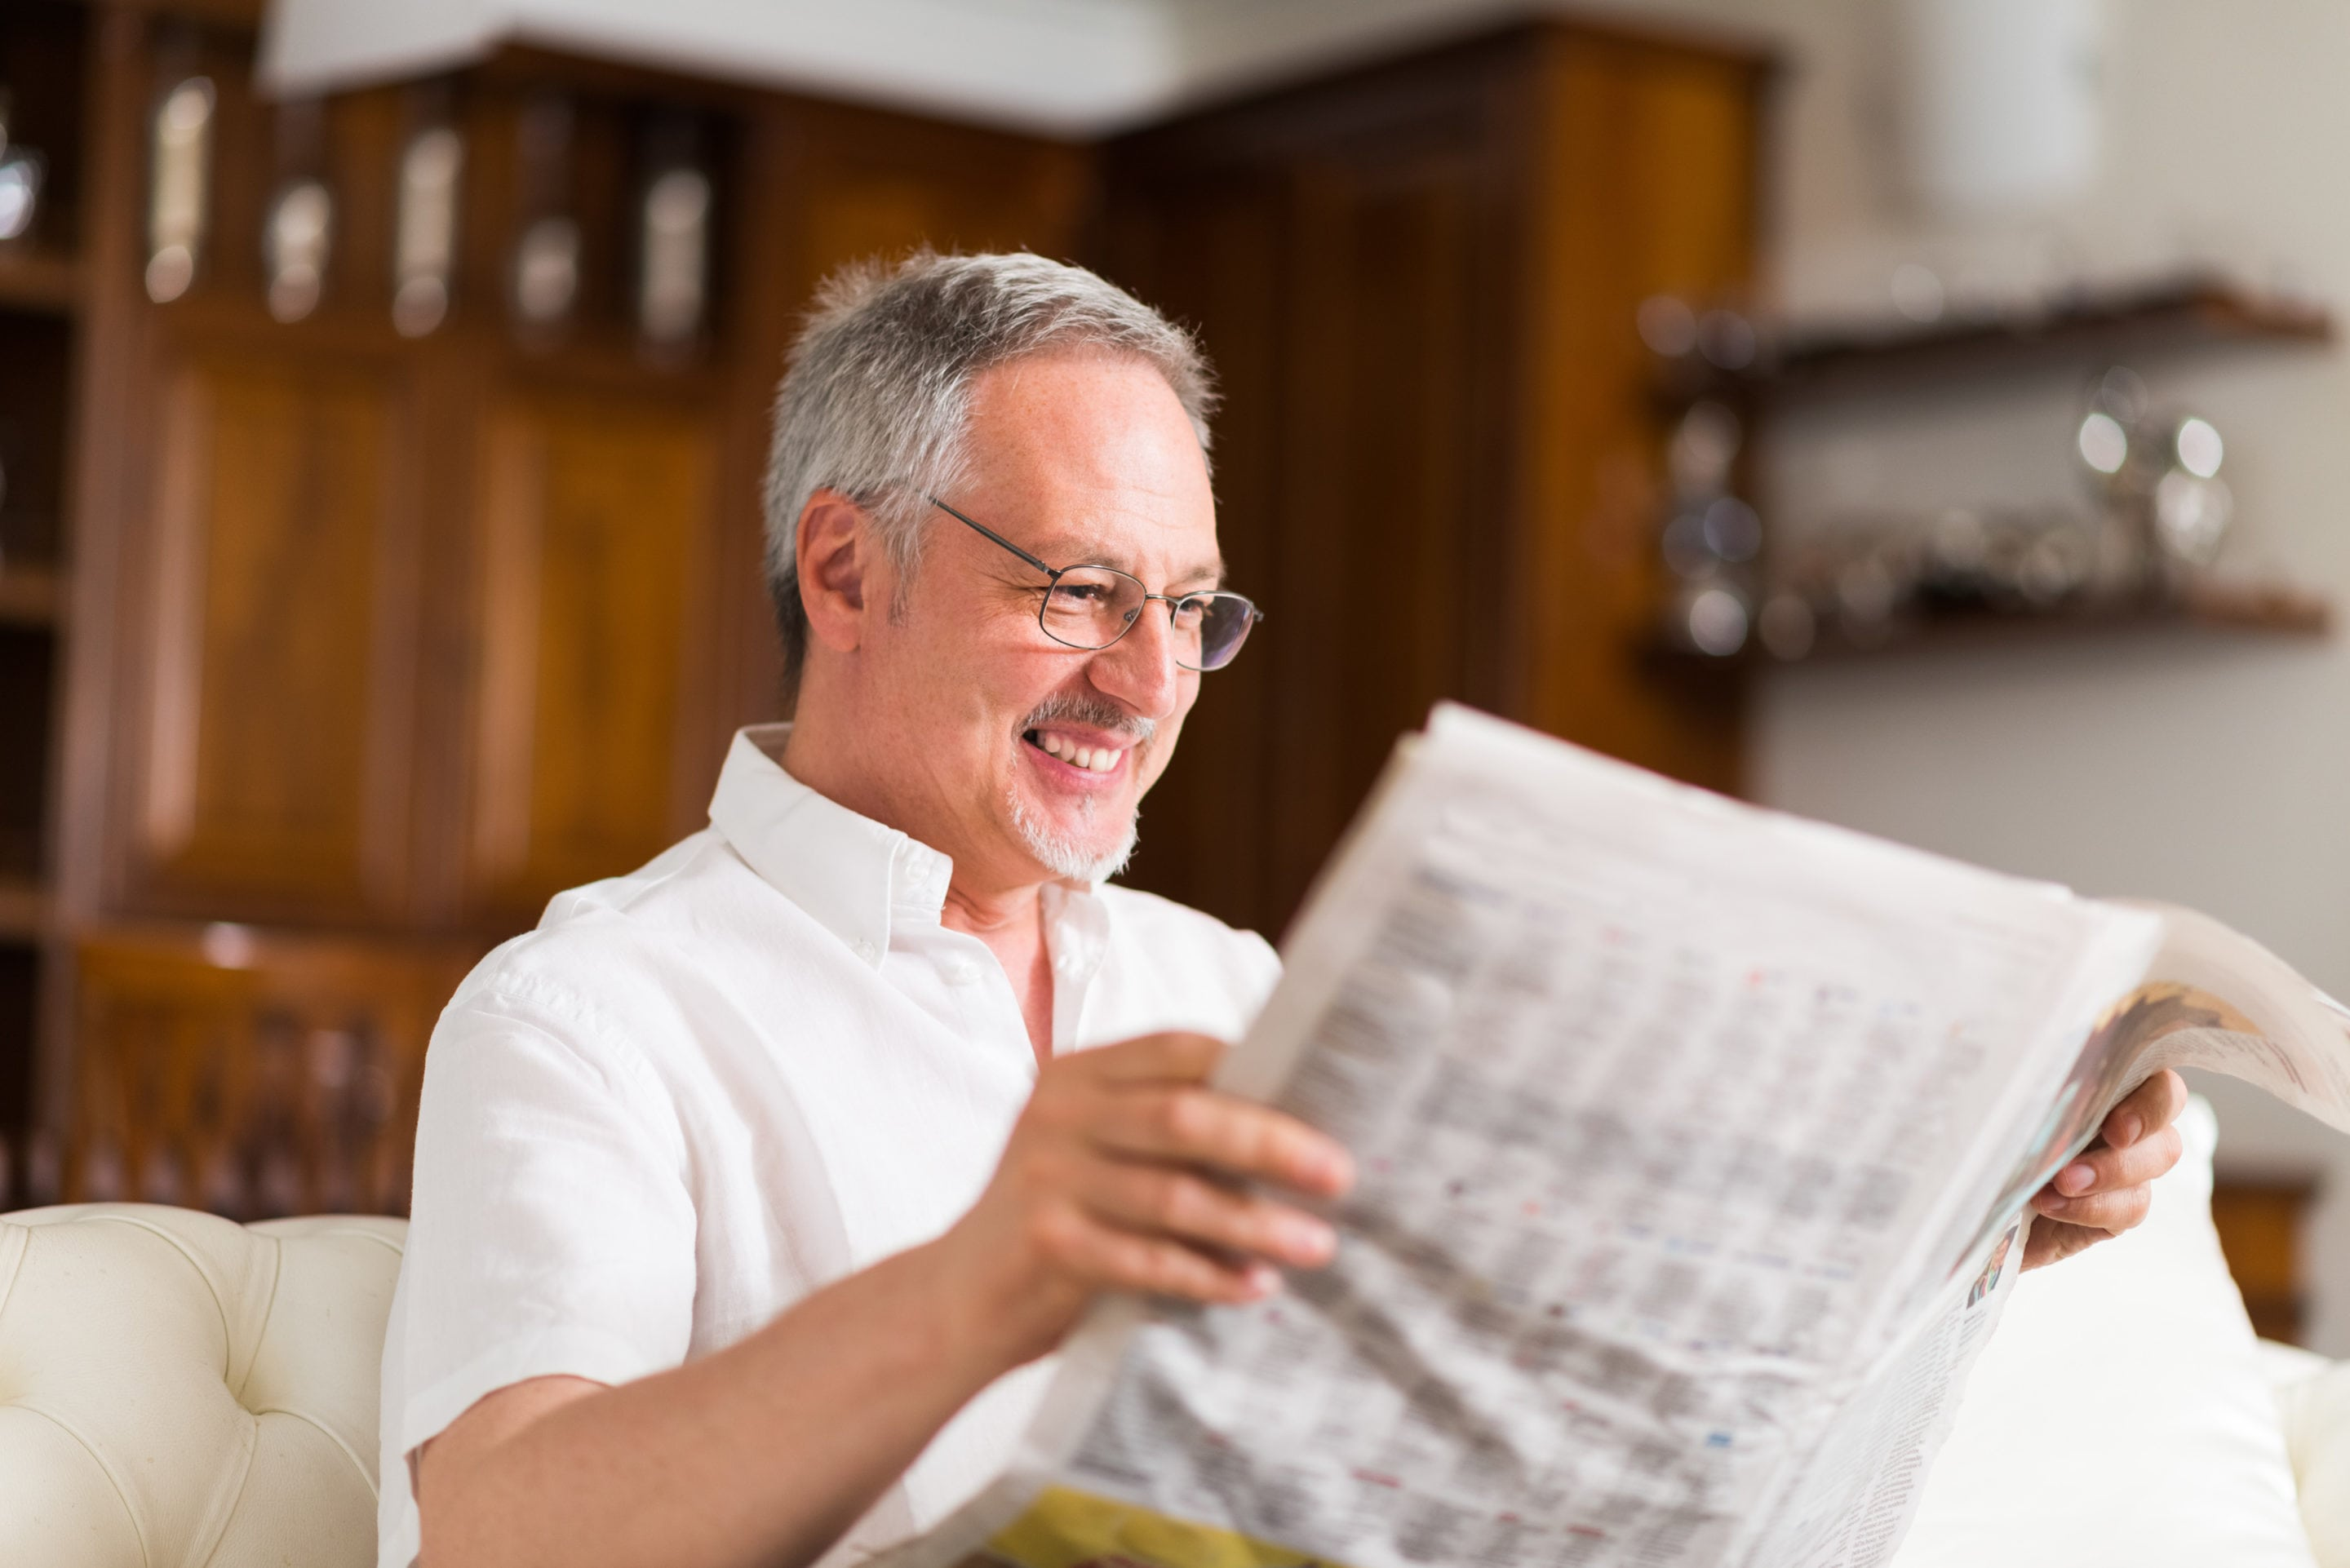 Mature man reading a newspaper | SLENT